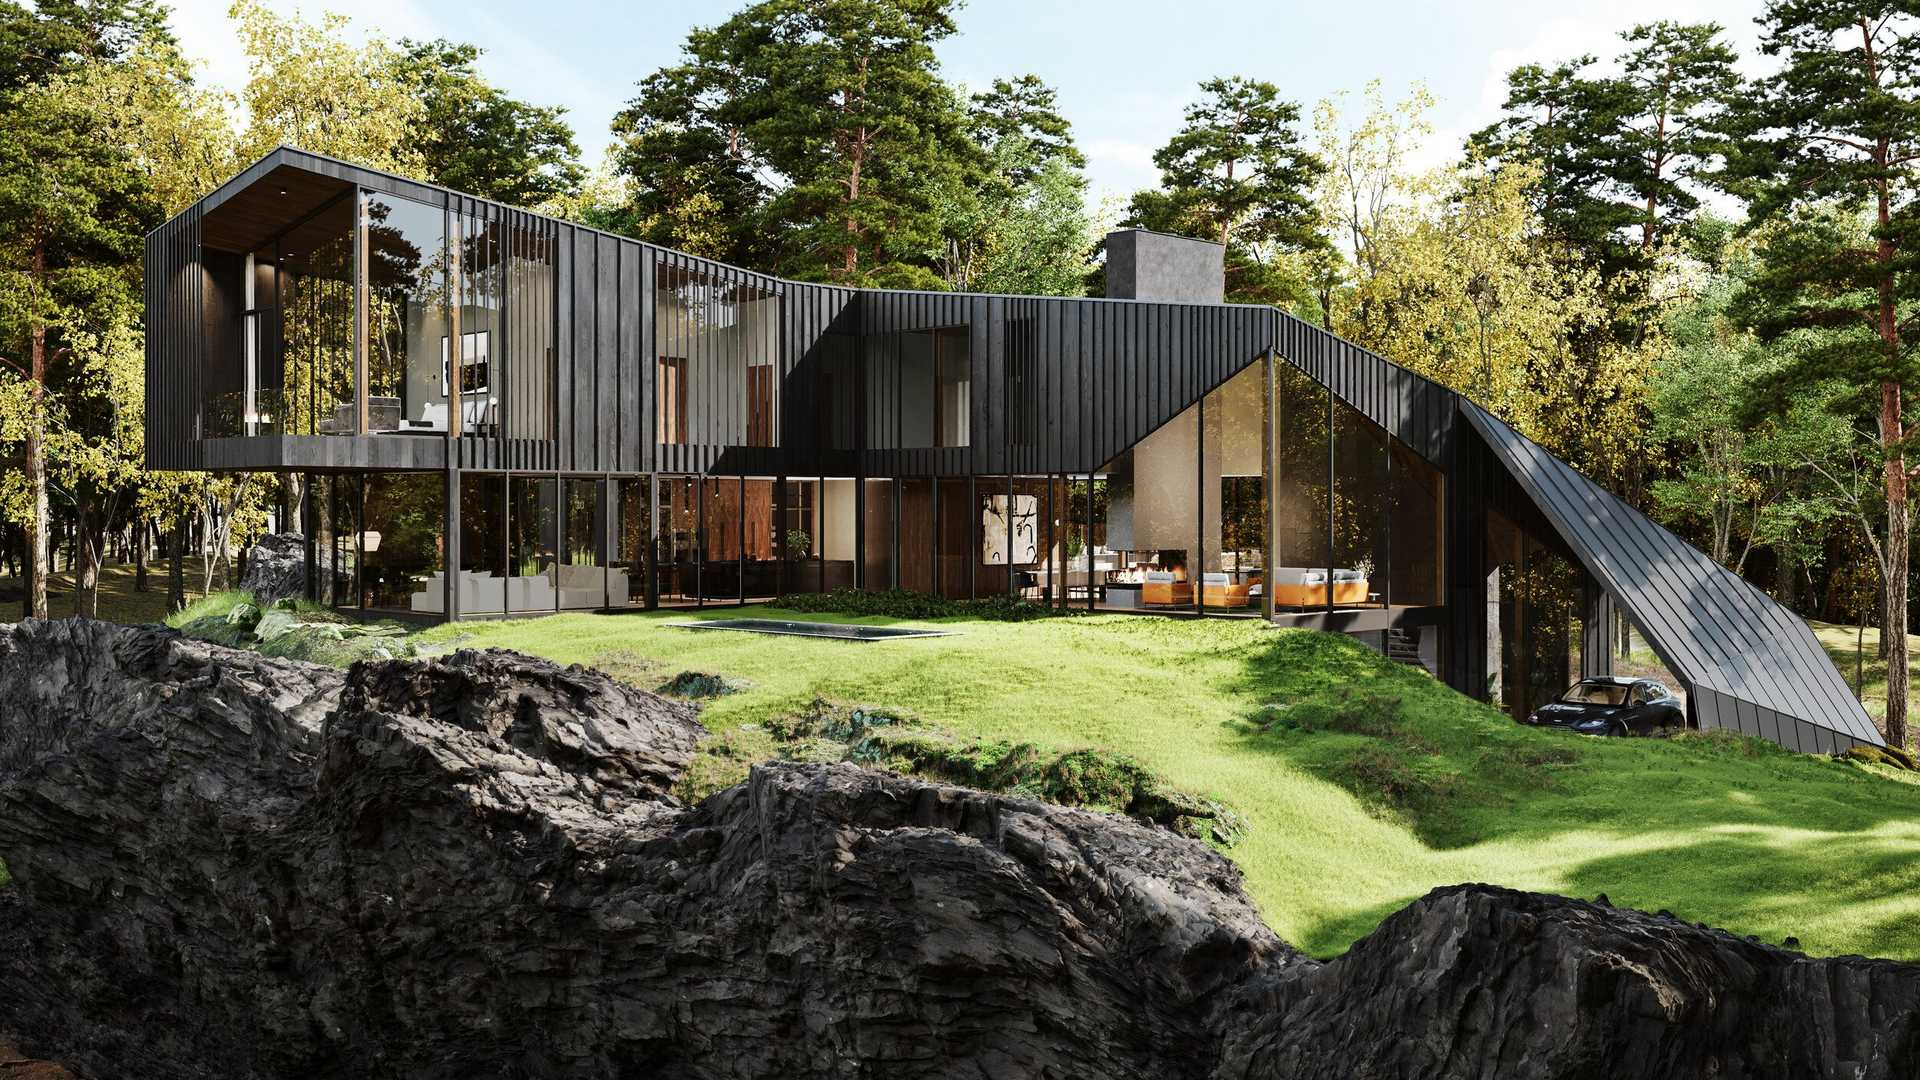 Aston Martin Designs Gorgeous Home With 2 000 Foot Long Driveway